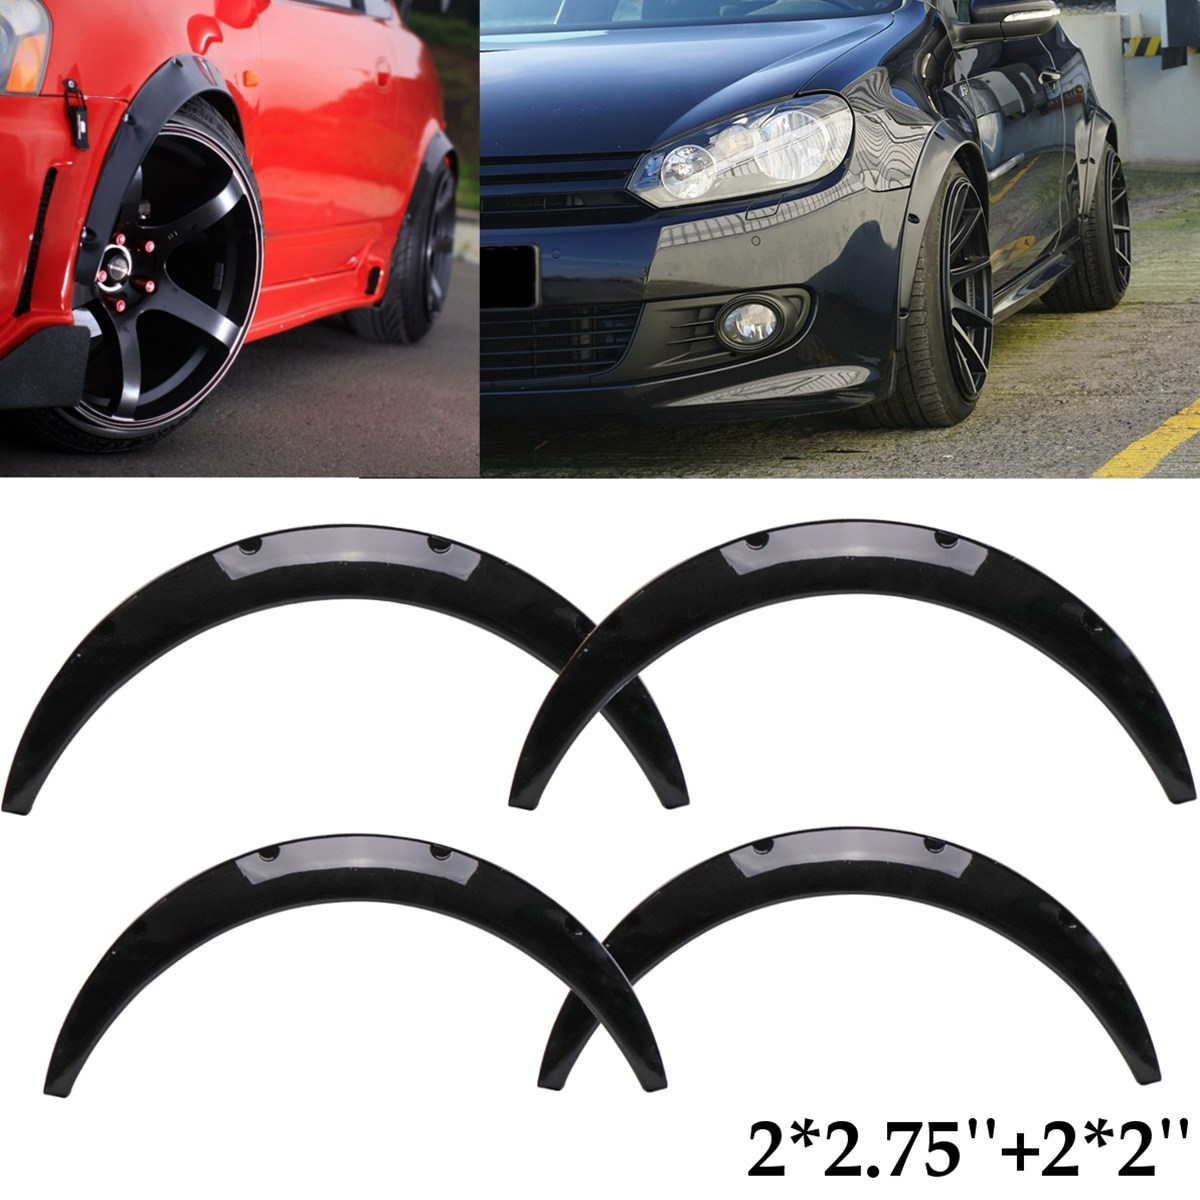 Universal Flexible Car Body For Fender Flares Extension Wide Wheel Arches For Mazda/Nissan Miata 200SX 240SX 300ZX 1980-2015